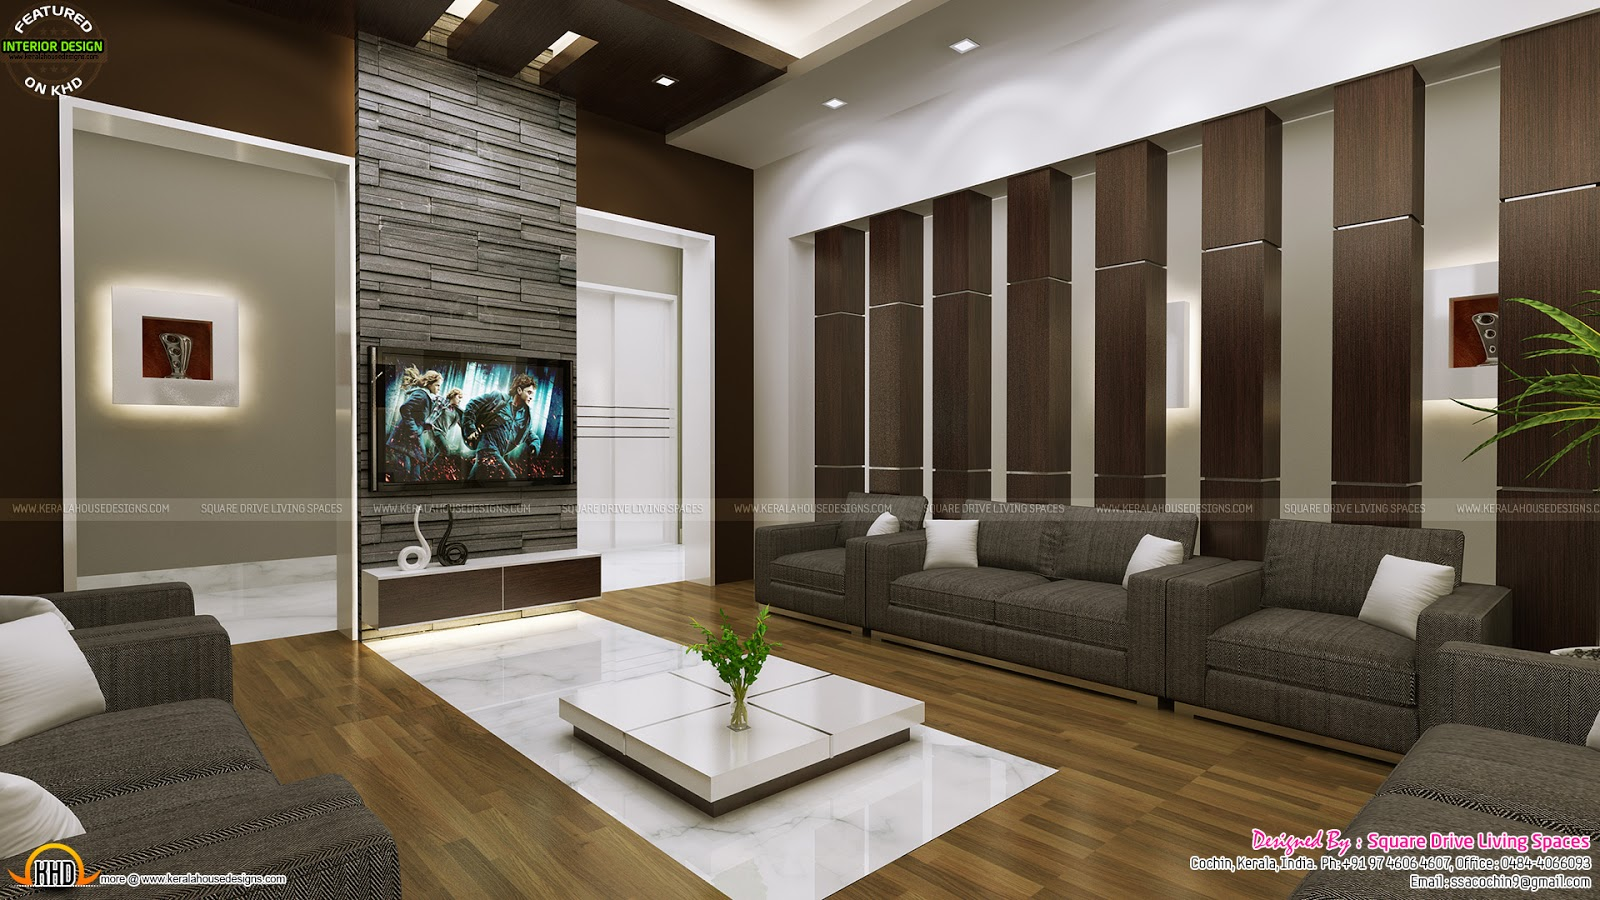 Attractive home interior ideas kerala home design and for Residential remodeling